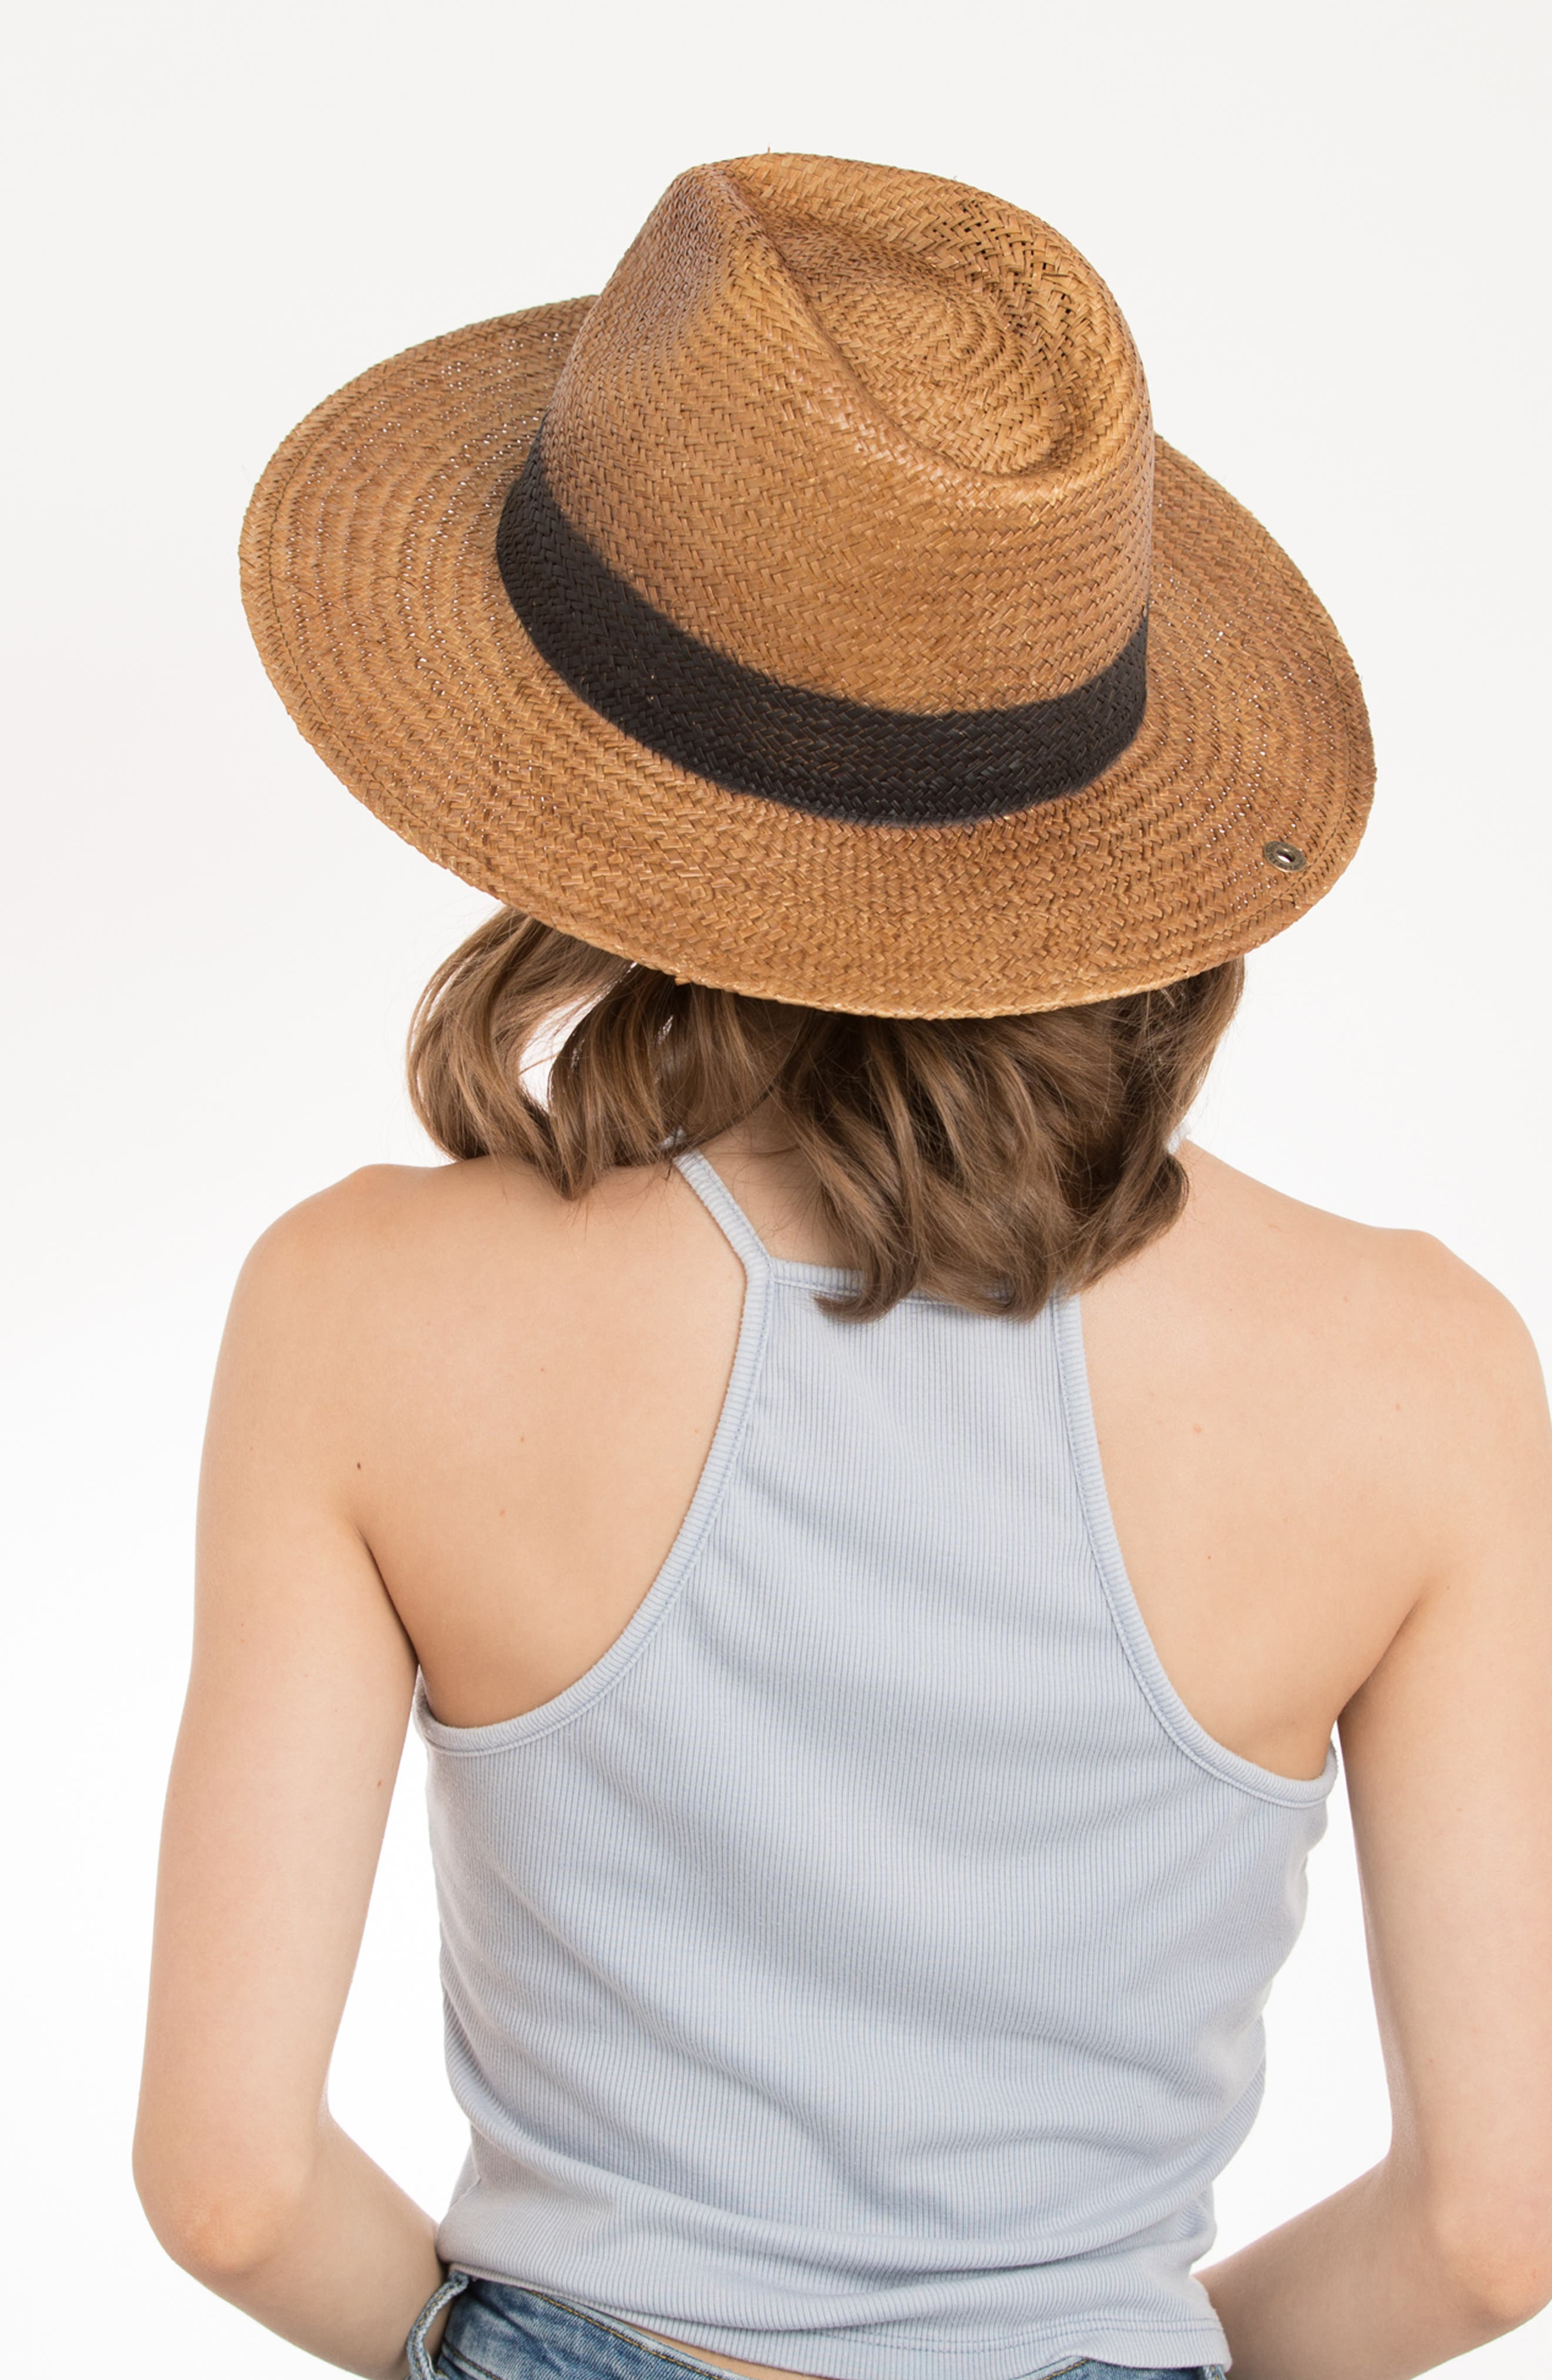 Cayenne Straw Resort Hat,                             Alternate thumbnail 4, color,                             230